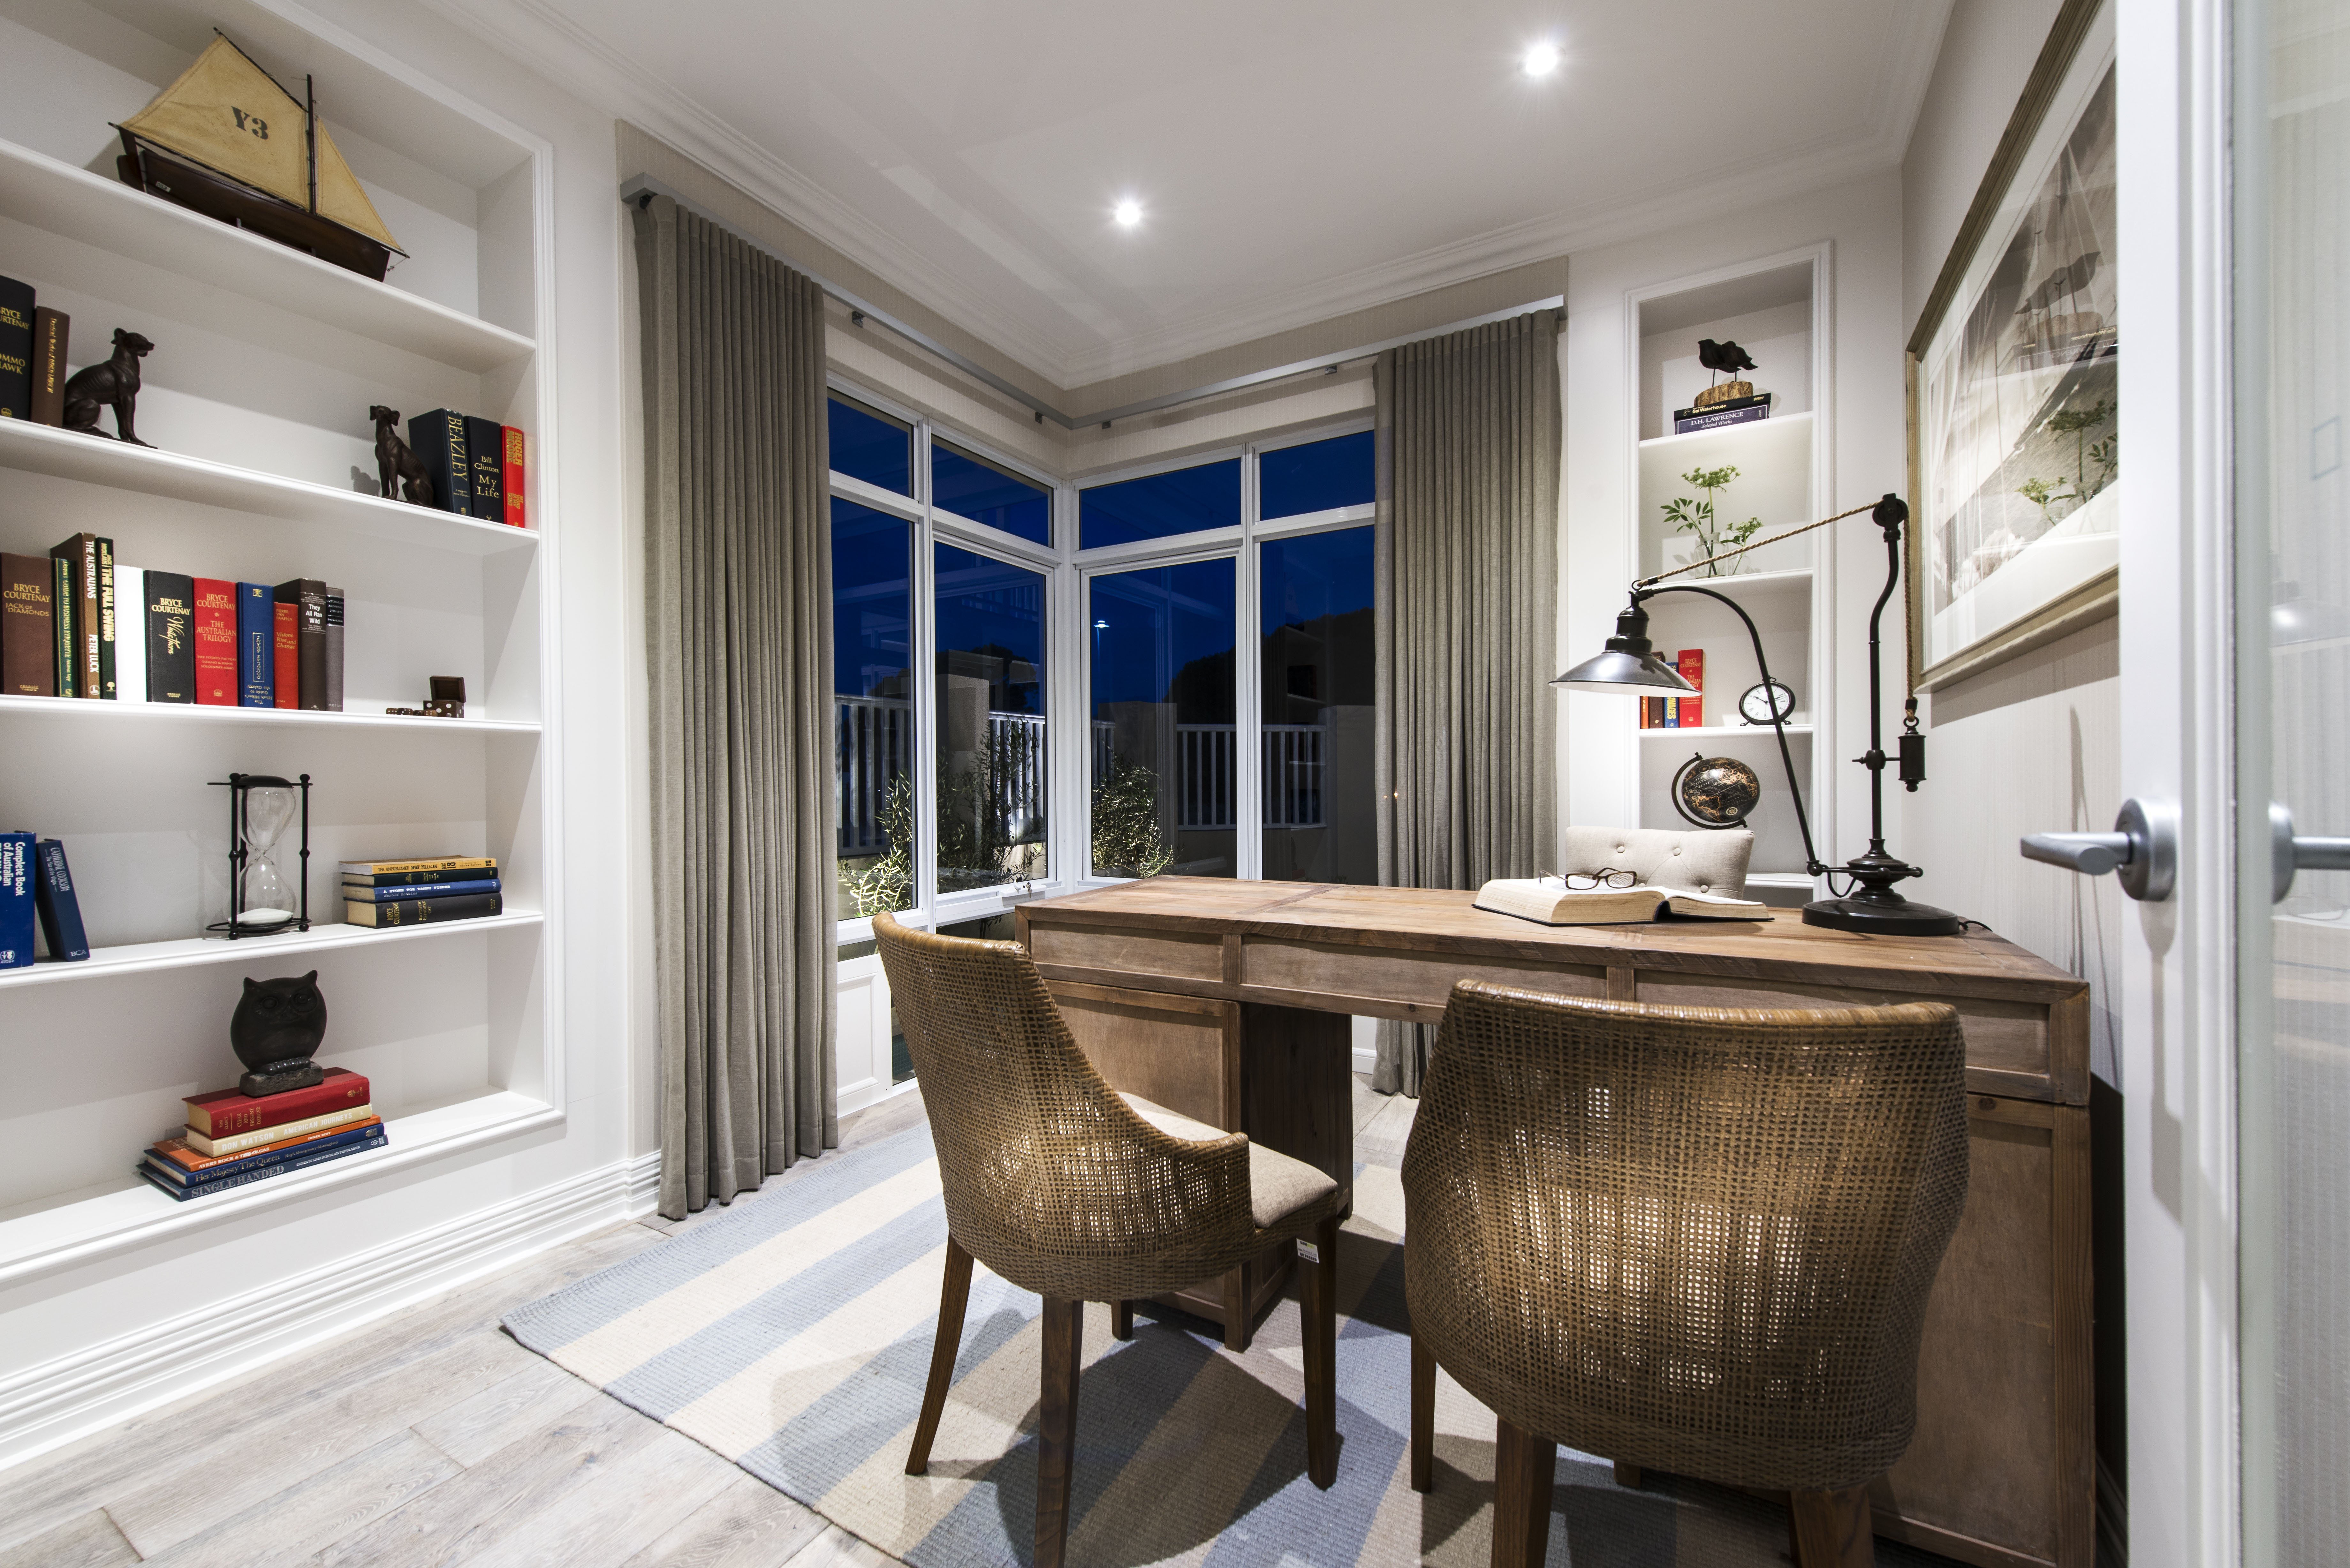 The home office has large built-in bookcases and a striped area rug beneath the desk. Large windows in the corner provide natural light.